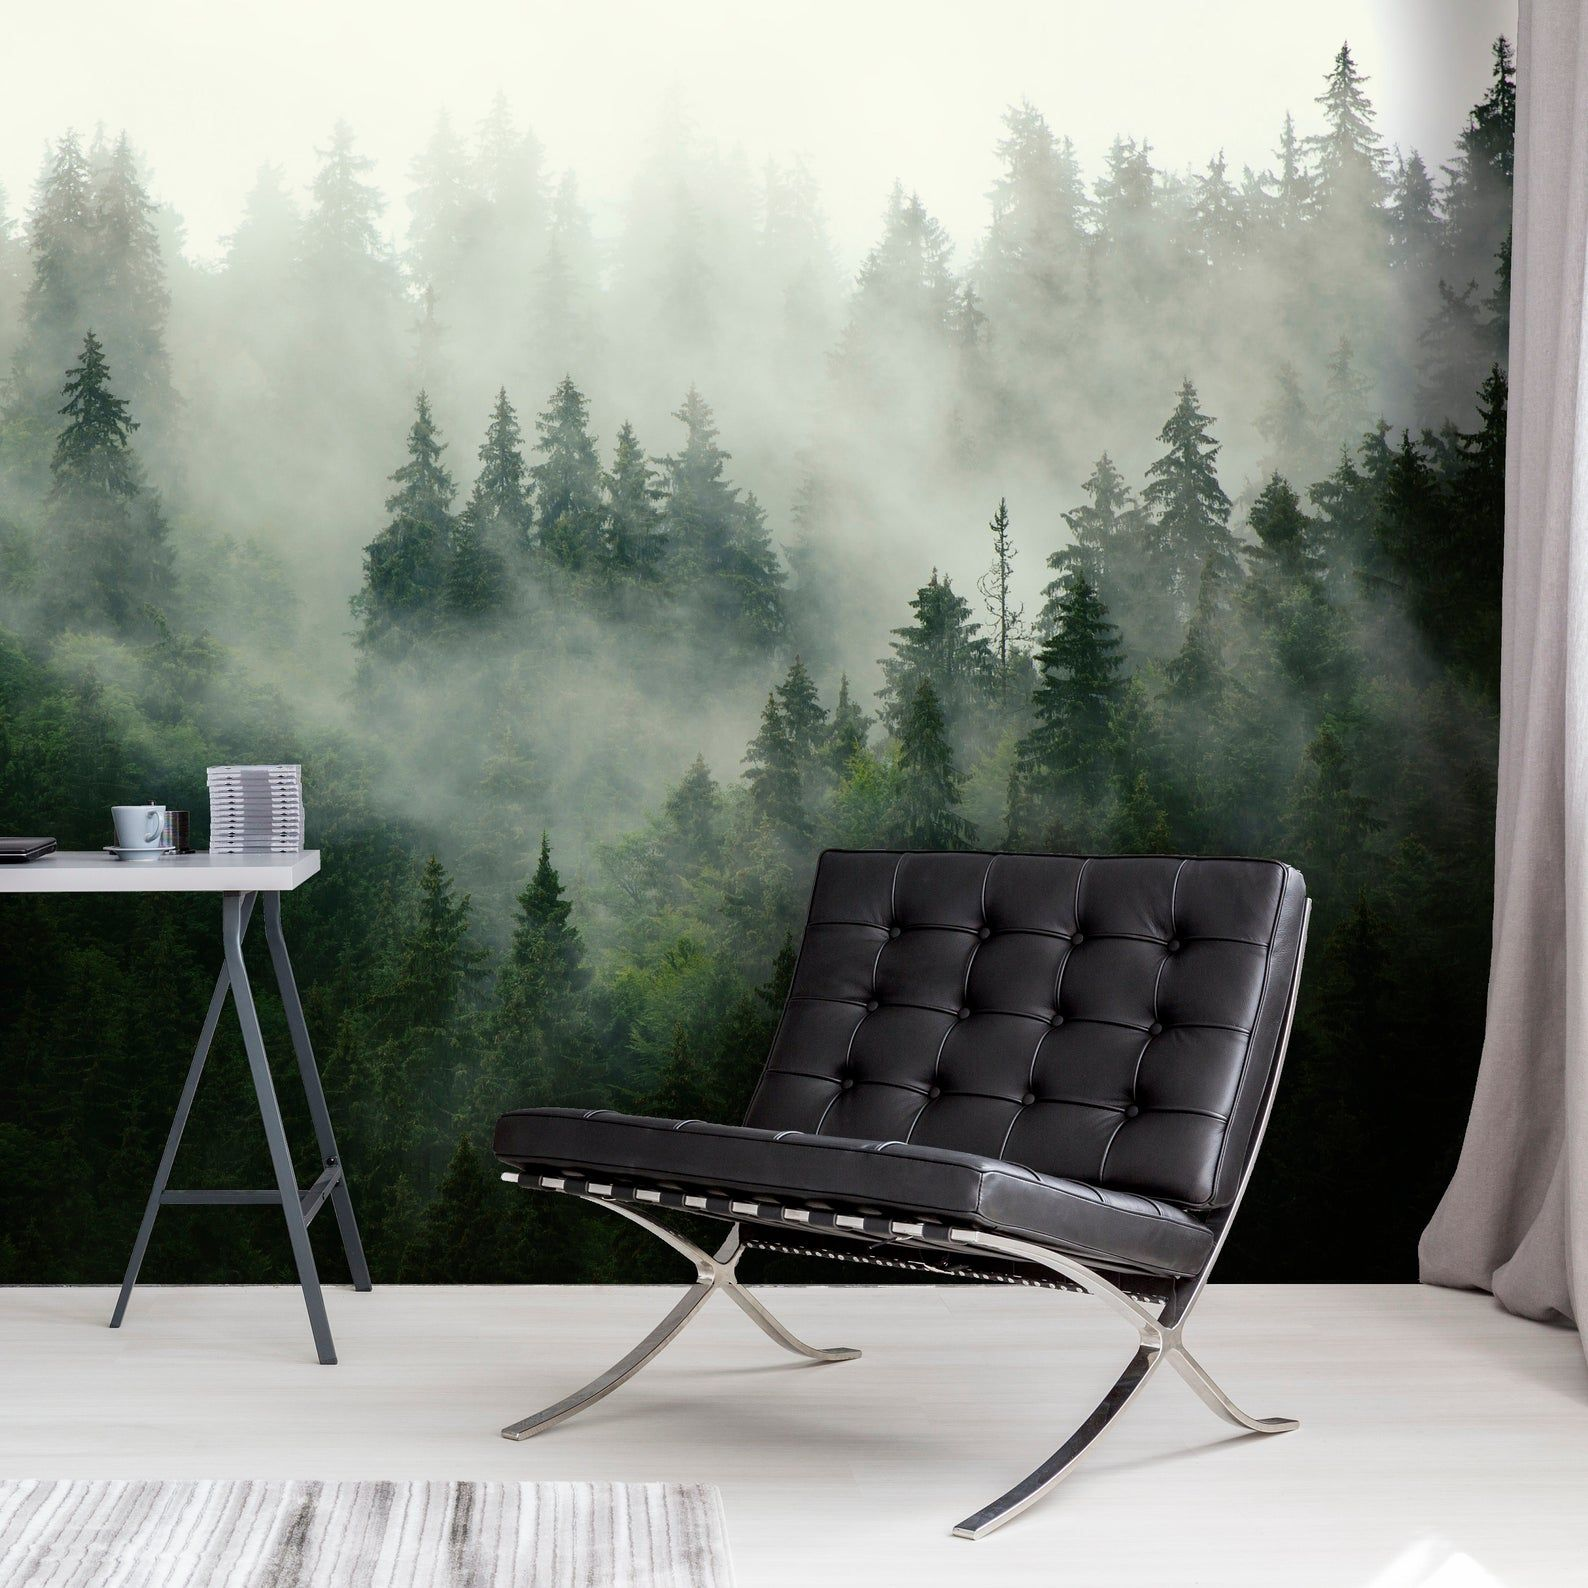 Foggy Forest Wallpaper Peel And Stick Removable Landscape Mural Mountains Wall Decoration Wood Nature Forest Mural Fresh Green In 2021 Forest Wallpaper Forest Mural Forest Wall Mural